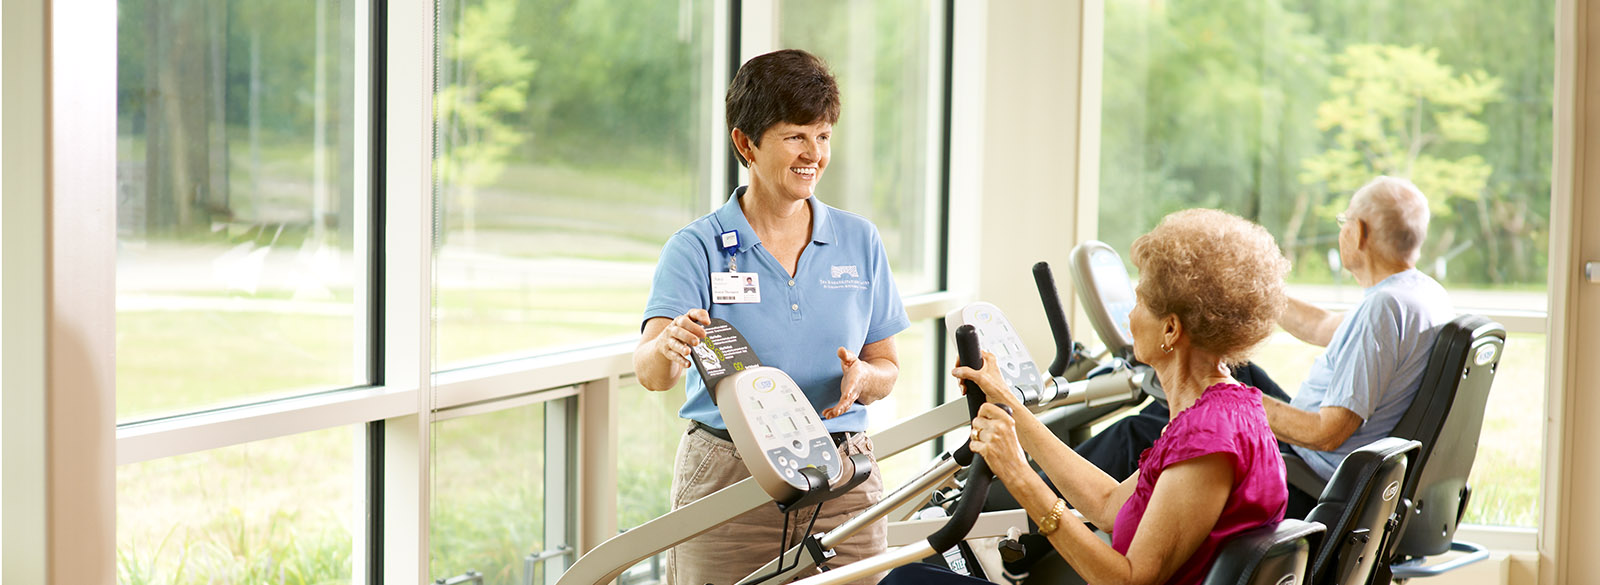 Wellness instructor with seniors on equipment at Mill Race Center